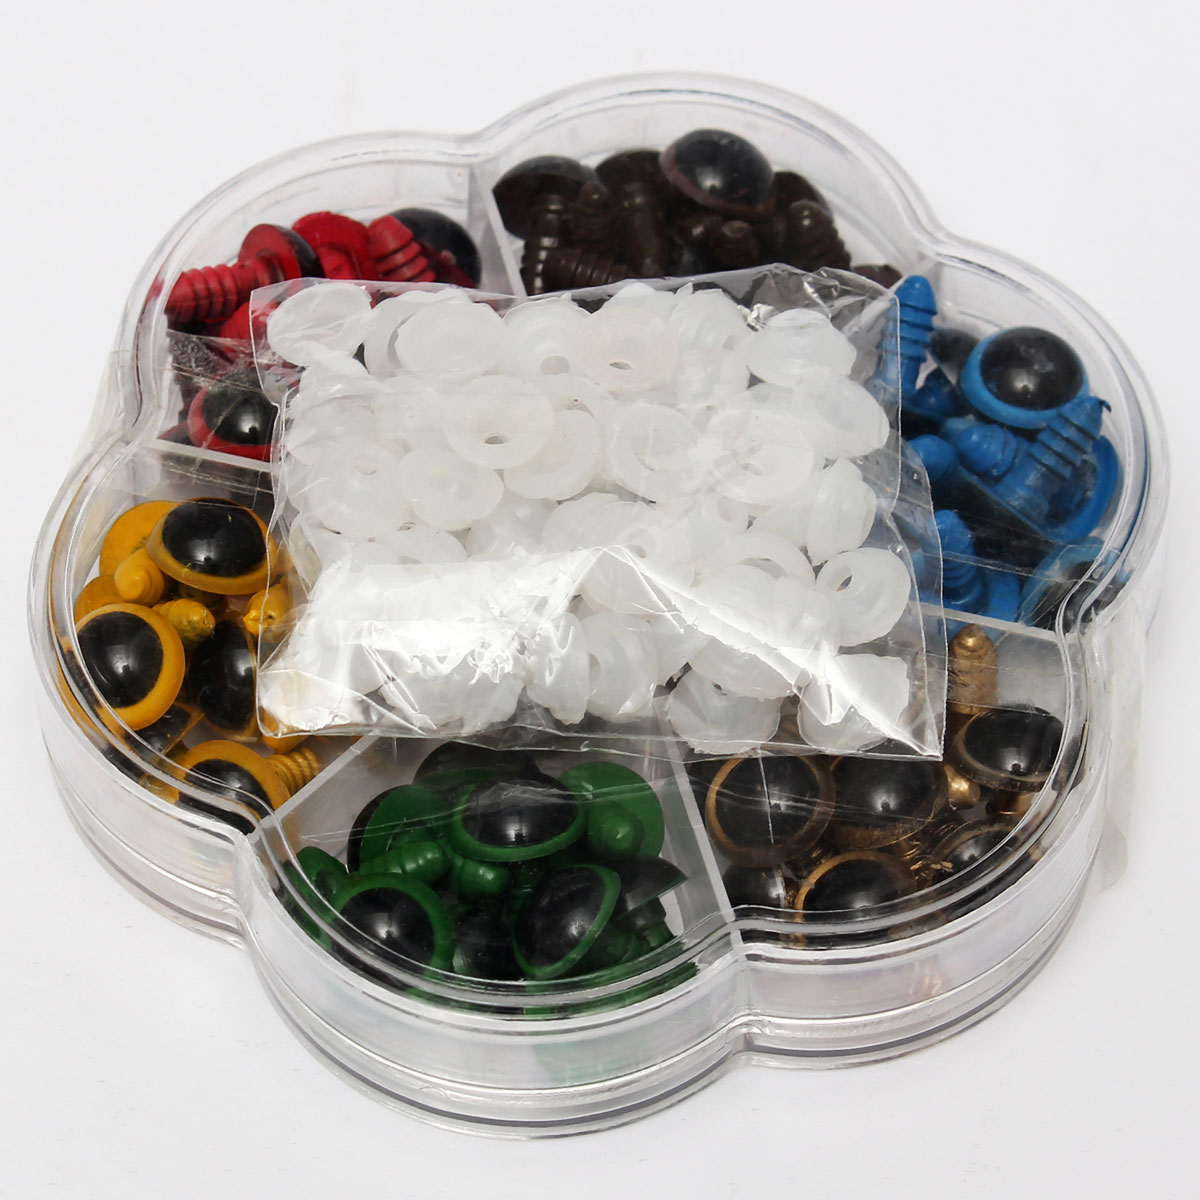 70PCS 12mm Mix 7 Colors Plastic Dolls Eyes Safety Eyes For DIY Teddy Bear Doll Animal Puppet Craft Box With Washers